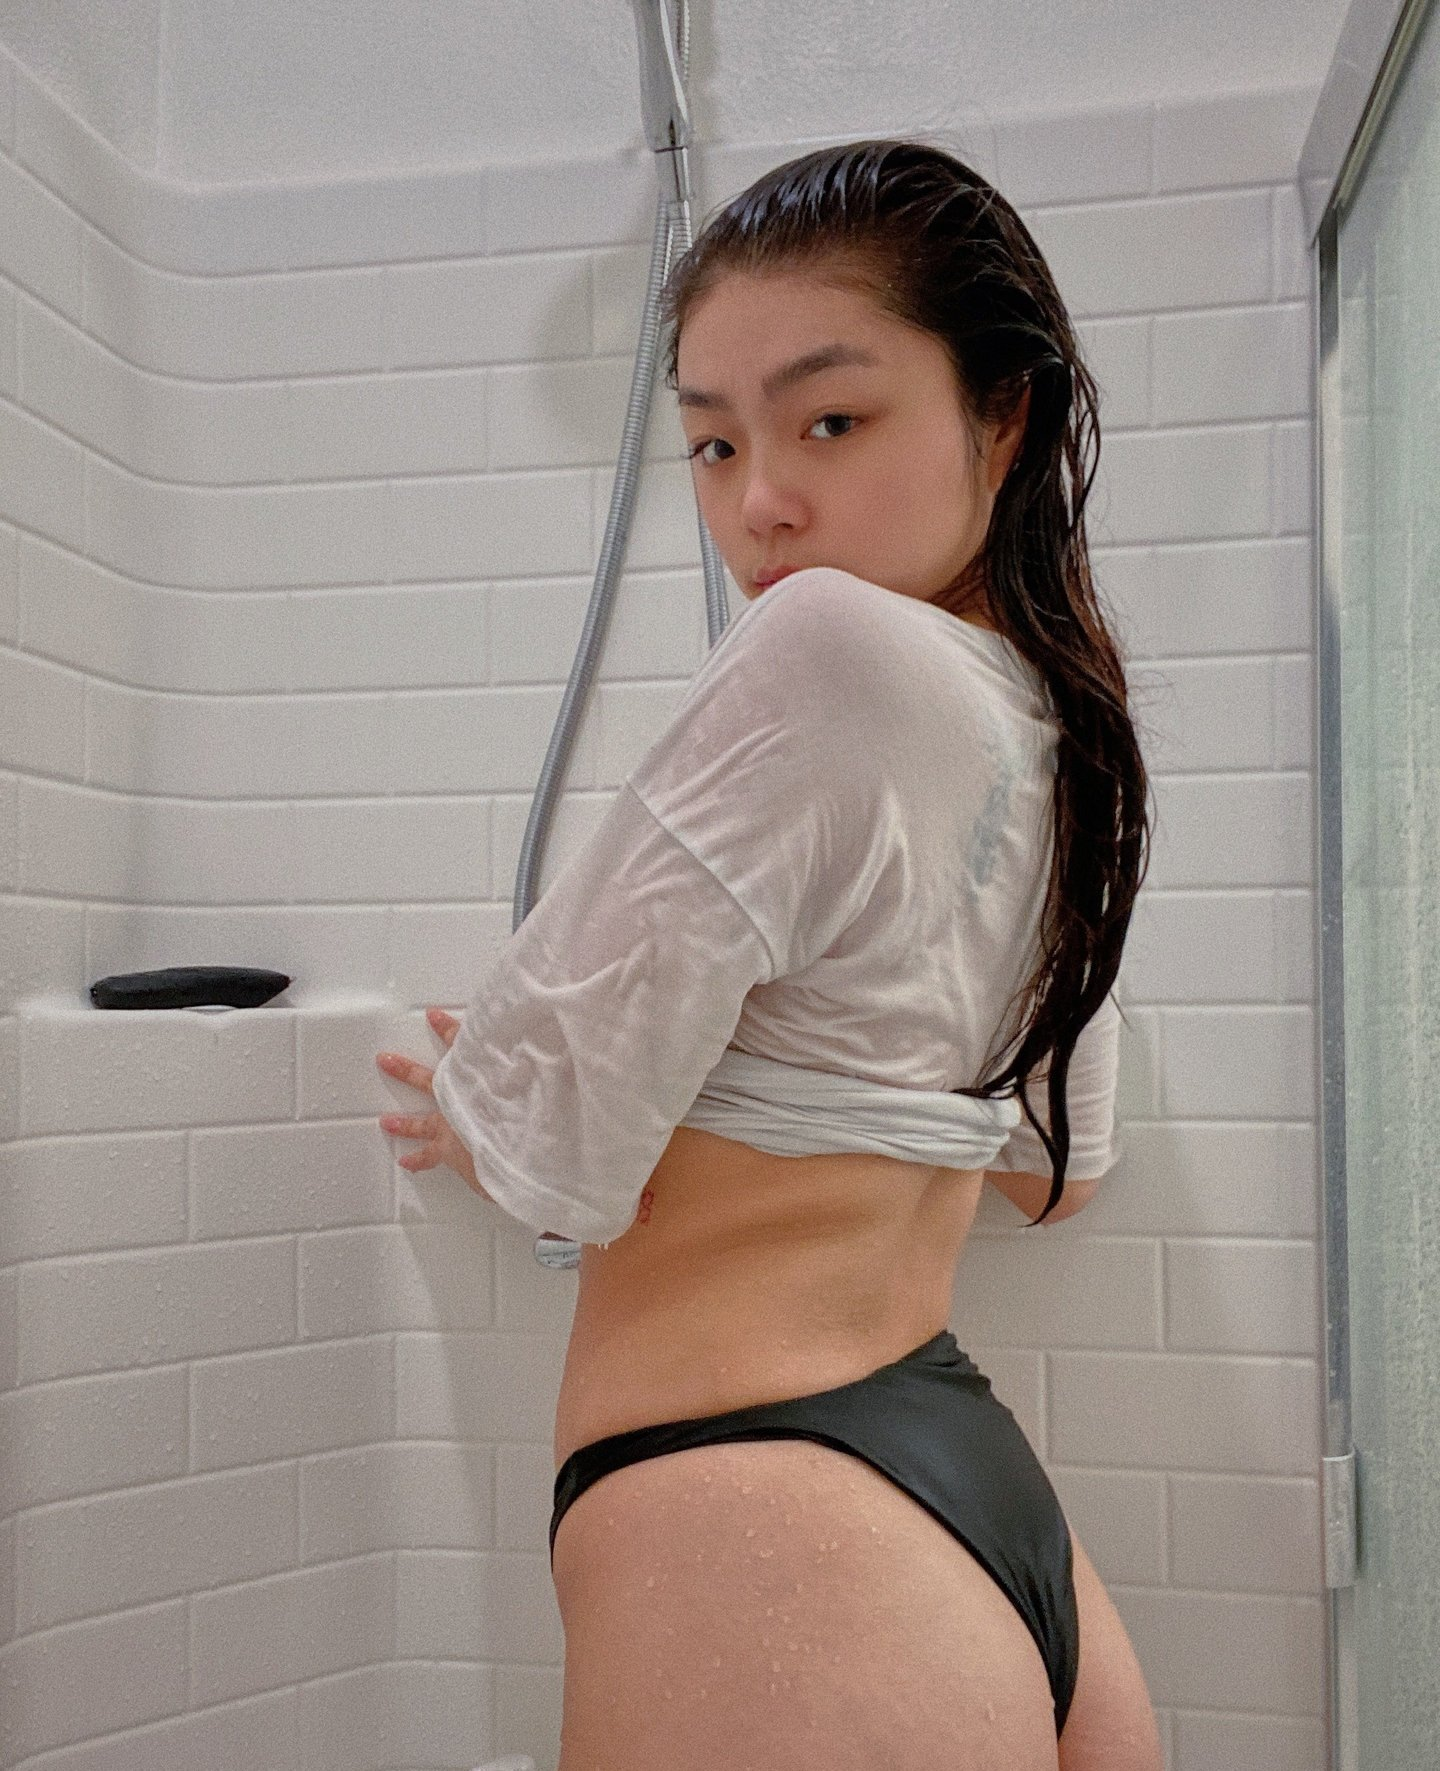 Shanghai Shawty Xanqiue Onlyfans Sexy Leaks 0016